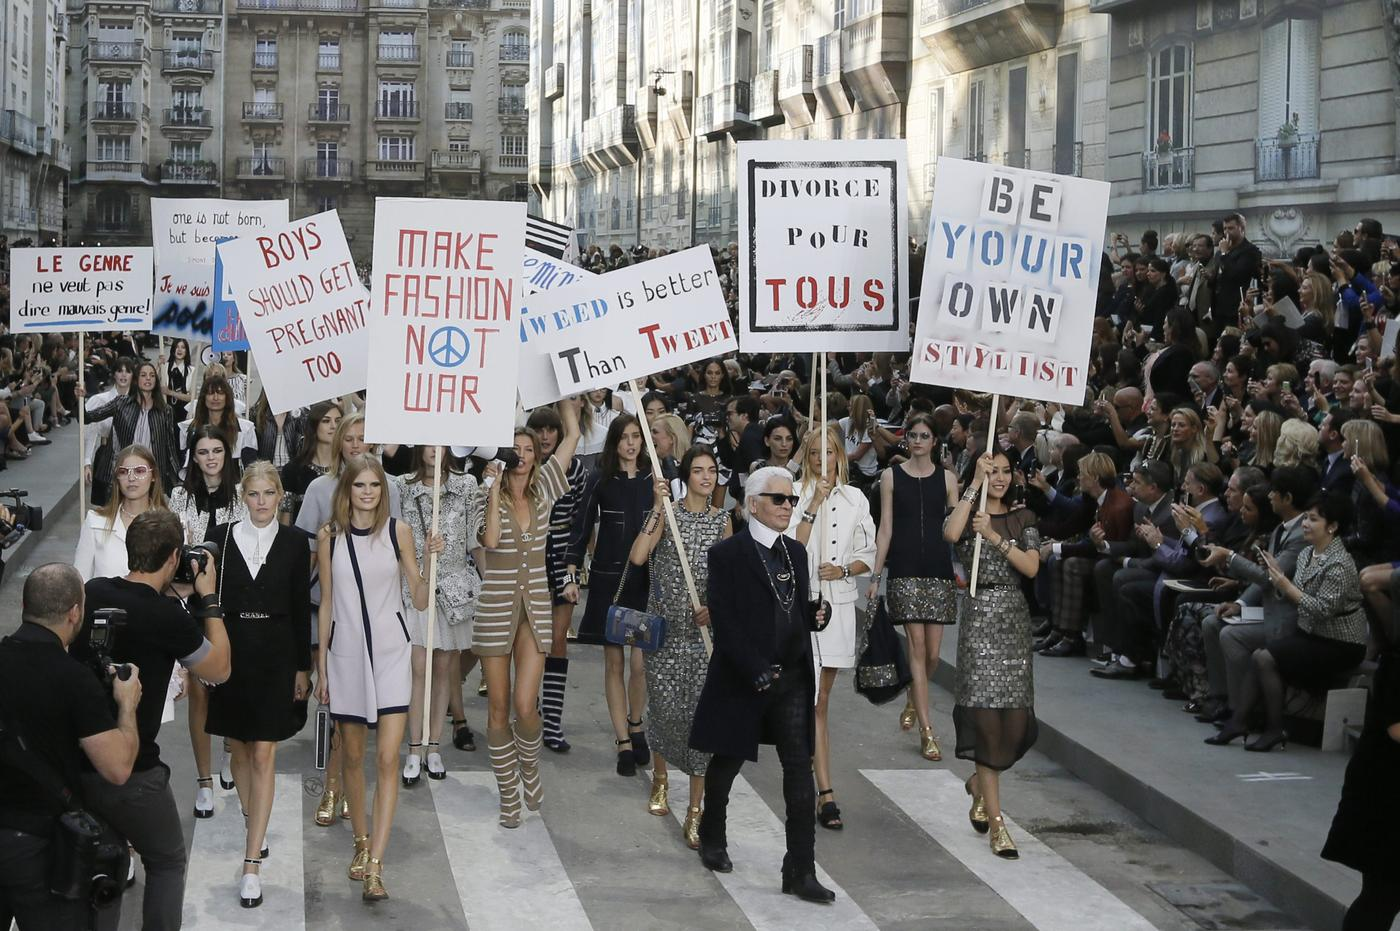 Karl Lagerfeld stages women's rights demo on the catwalk for Chanel SS15 at Paris Fashion Week